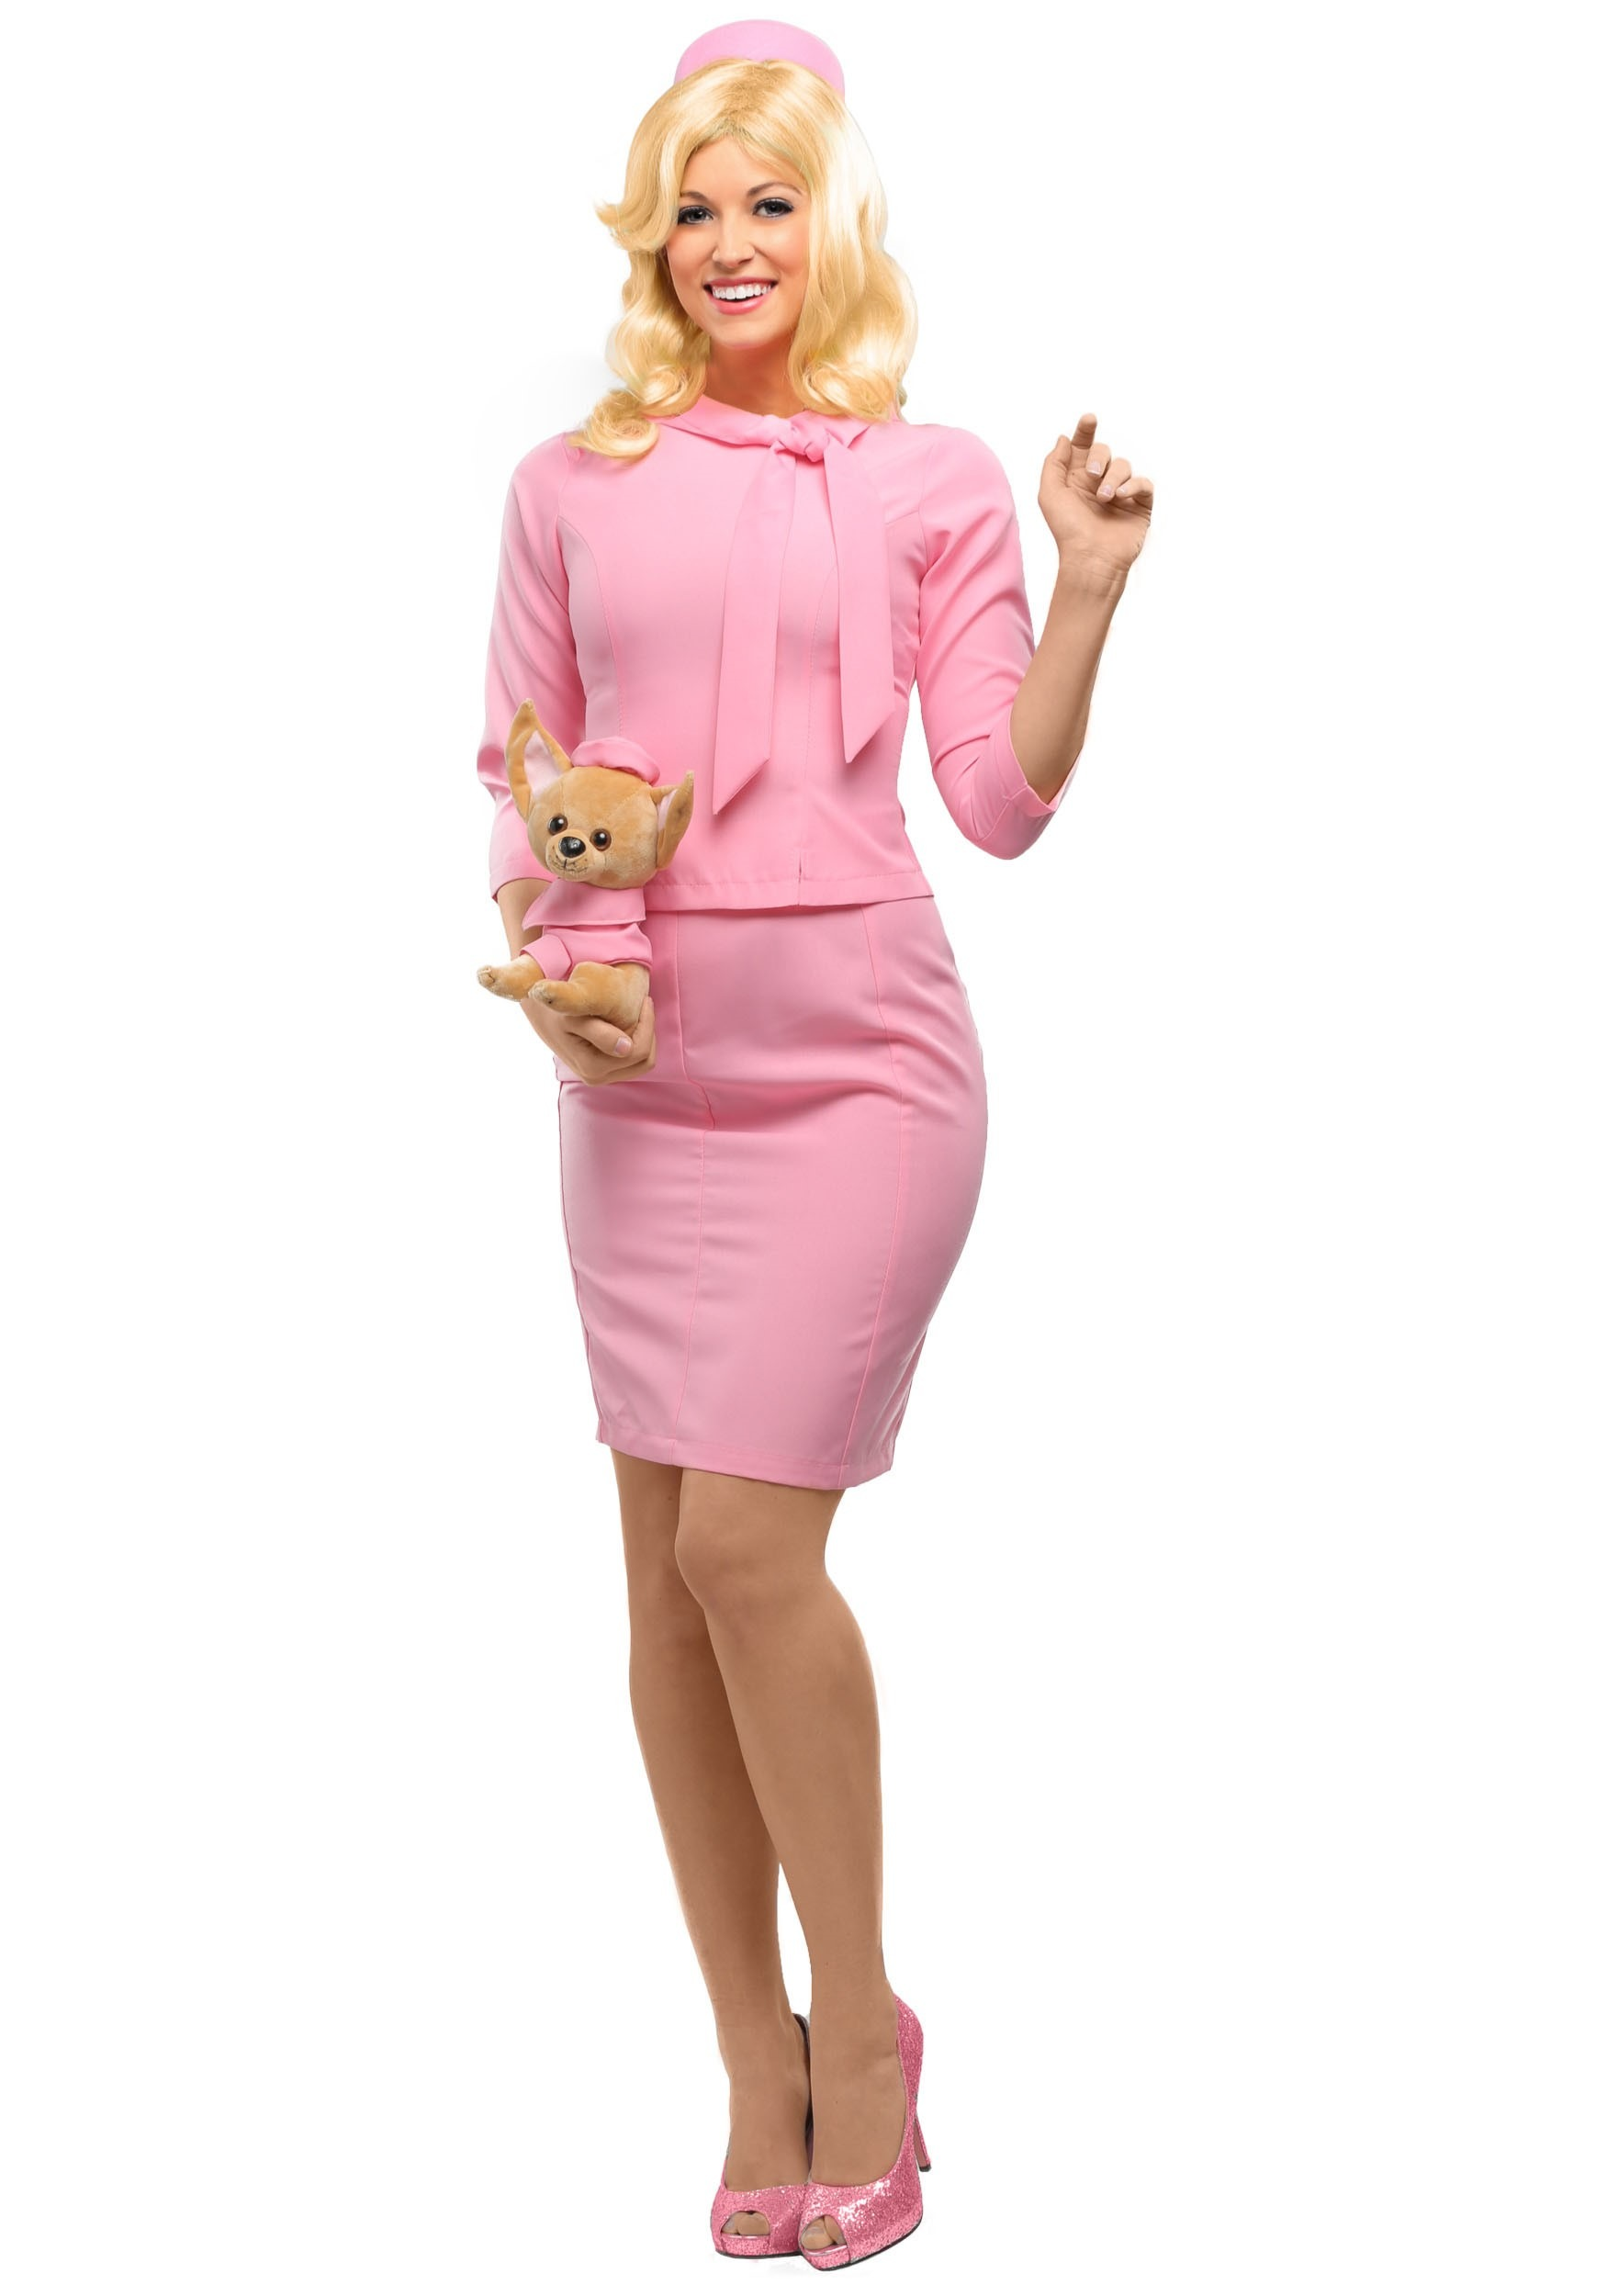 Legally Blonde 2 Elle Woods Costume for Women